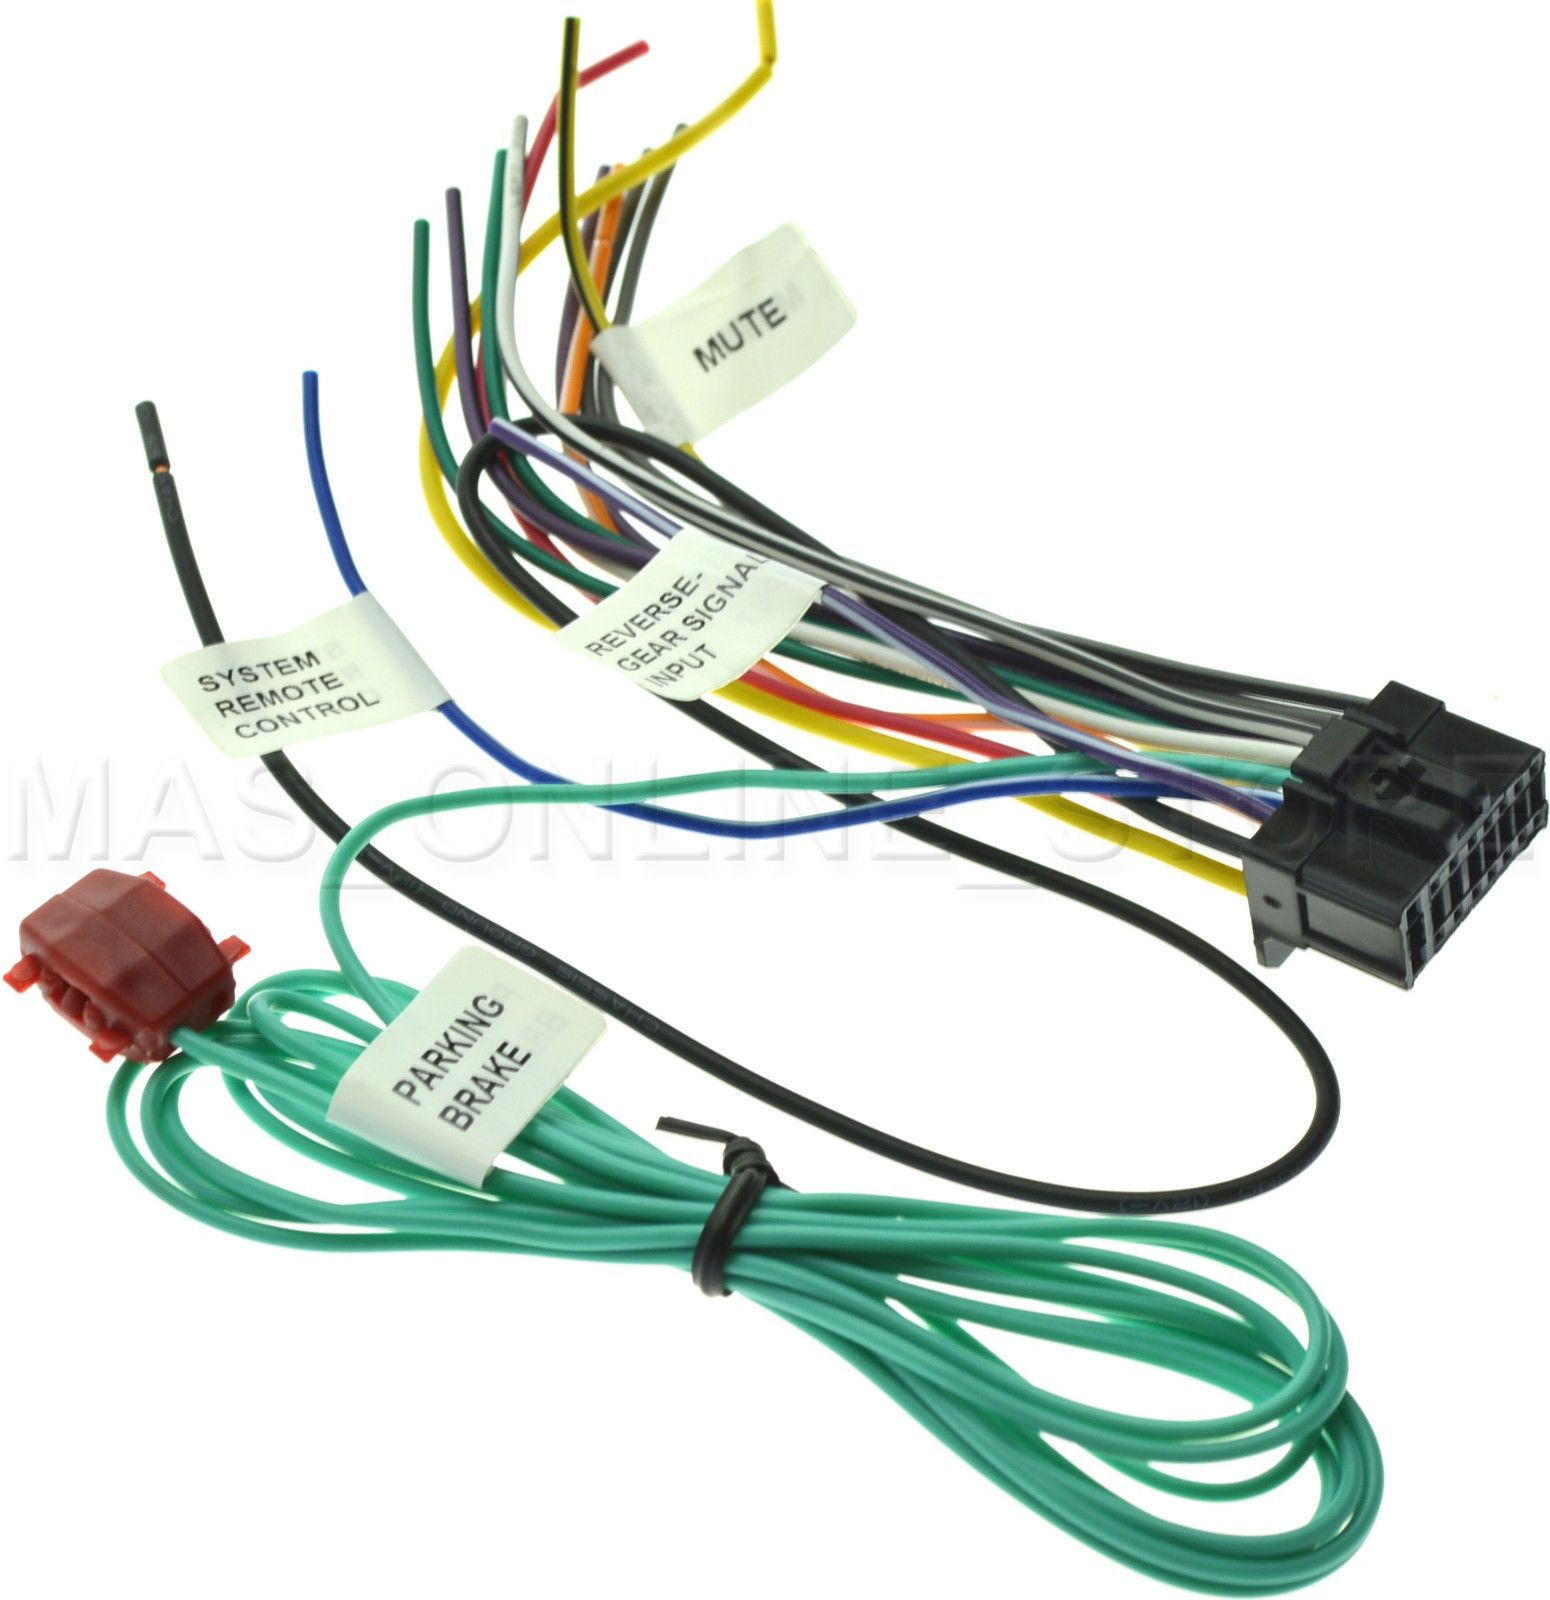 medium resolution of  12 91 wire harness for pioneer avh p8400bh avhp8400bh pay today ships today ebay